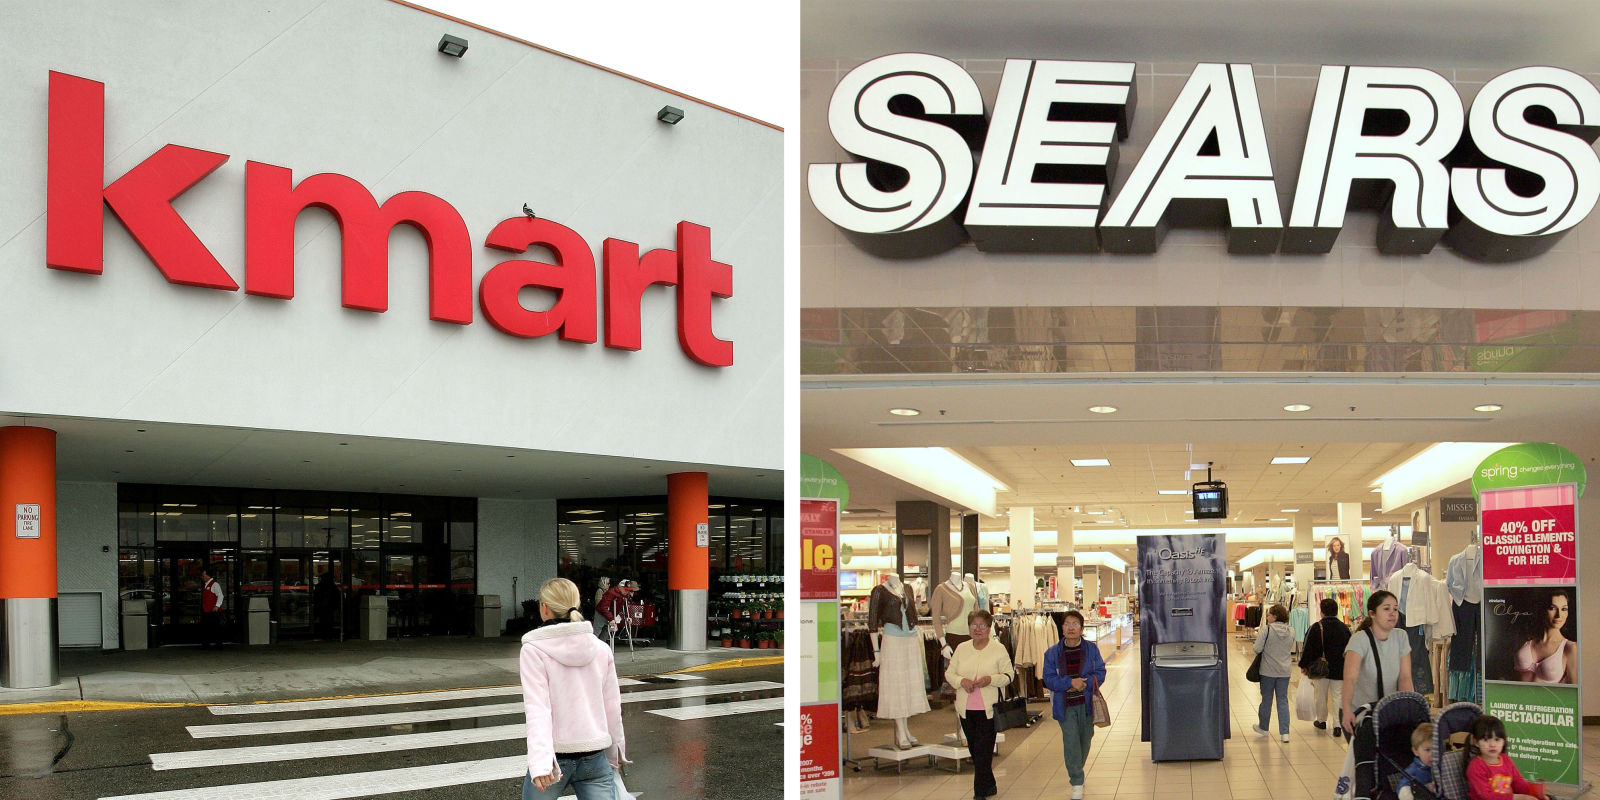 More Kmart And Sears Stores Closing   Which Kmart And Sears Stores Closing?